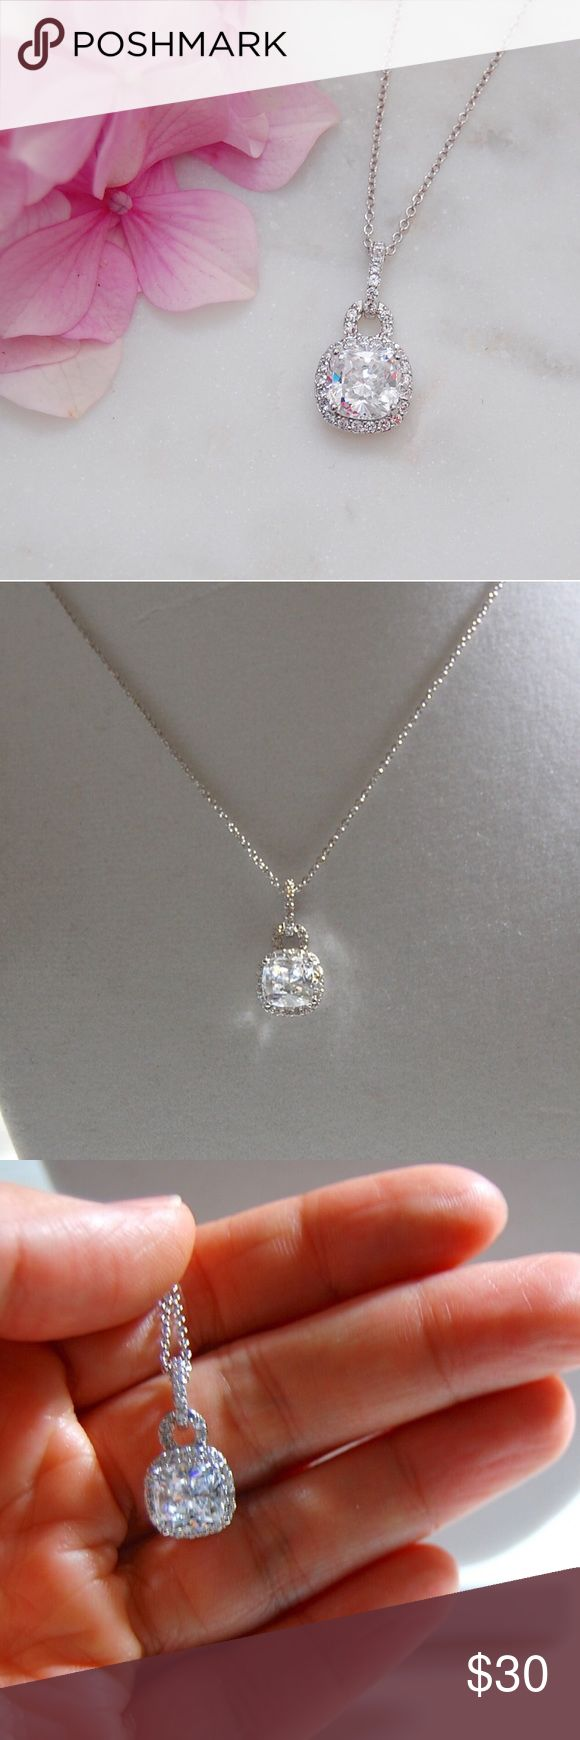 CZ Pendant Necklace | Cushion Cut Cushion cut cubic zirconia pendant necklace. Large CZ is around 2 karats. Pendant hangs a little over .75 inches long. Necklace is 17 inches with a lobster clasp and 2 inch extender. Price firm unless bundled. Includes box.    Instagram: @bringingupsuns Jewelry Necklaces